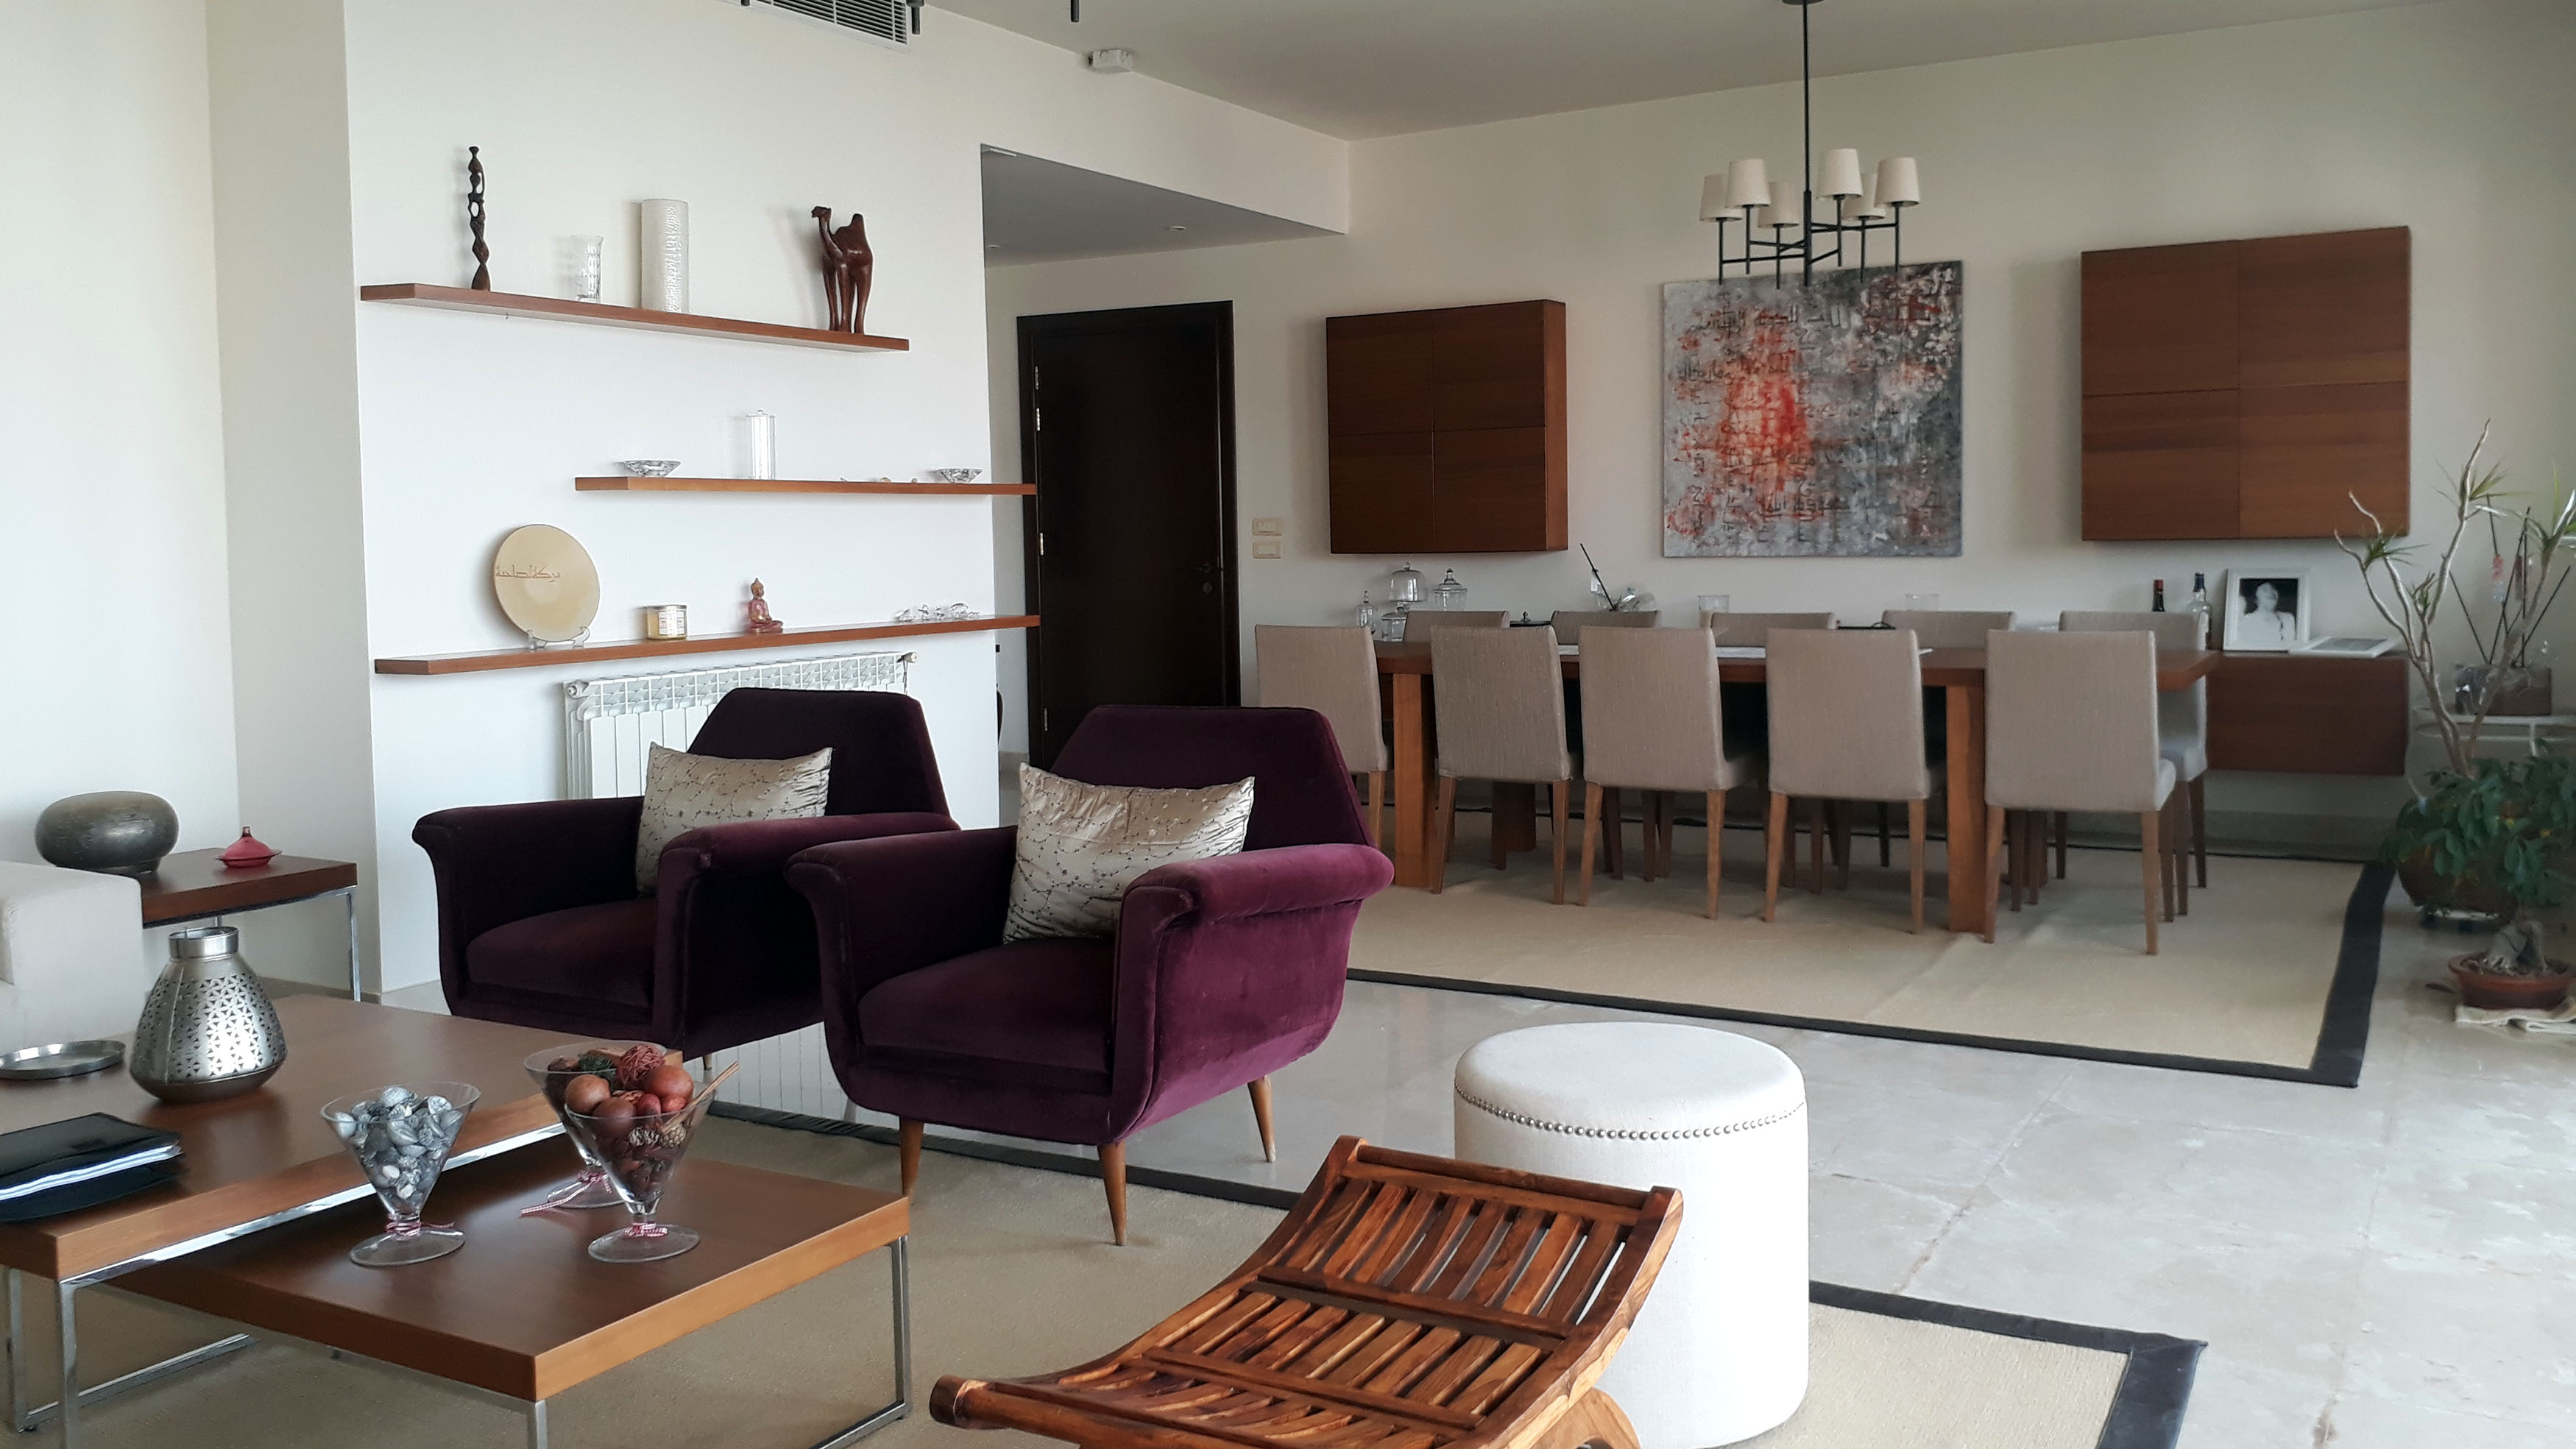 Spacious and Elegant Apartment For Sale in Biyada 8th street